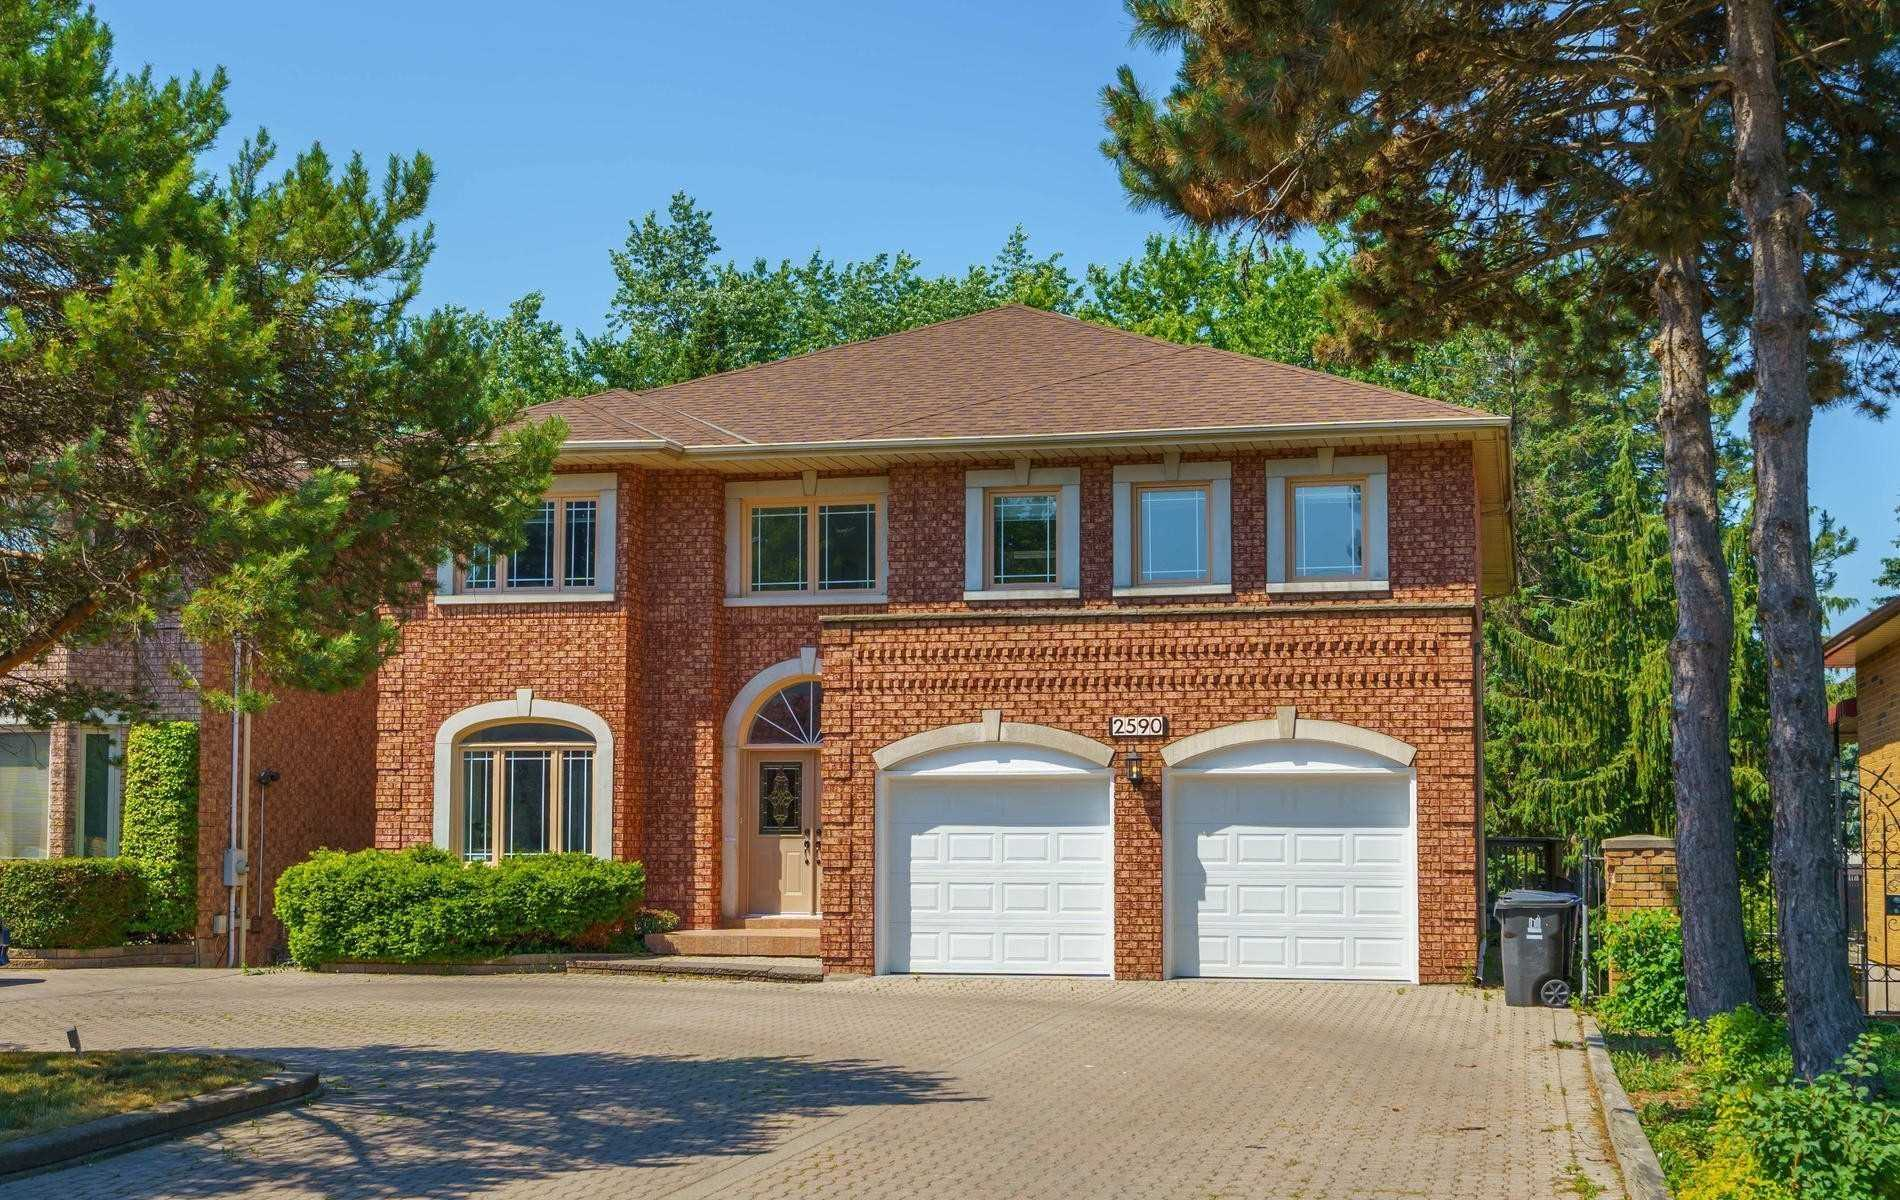 2590 Kennedy Rd, Toronto, Ontario M1T 3H1, 4 Bedrooms Bedrooms, 10 Rooms Rooms,6 BathroomsBathrooms,Detached,For Sale,Kennedy,E4939384